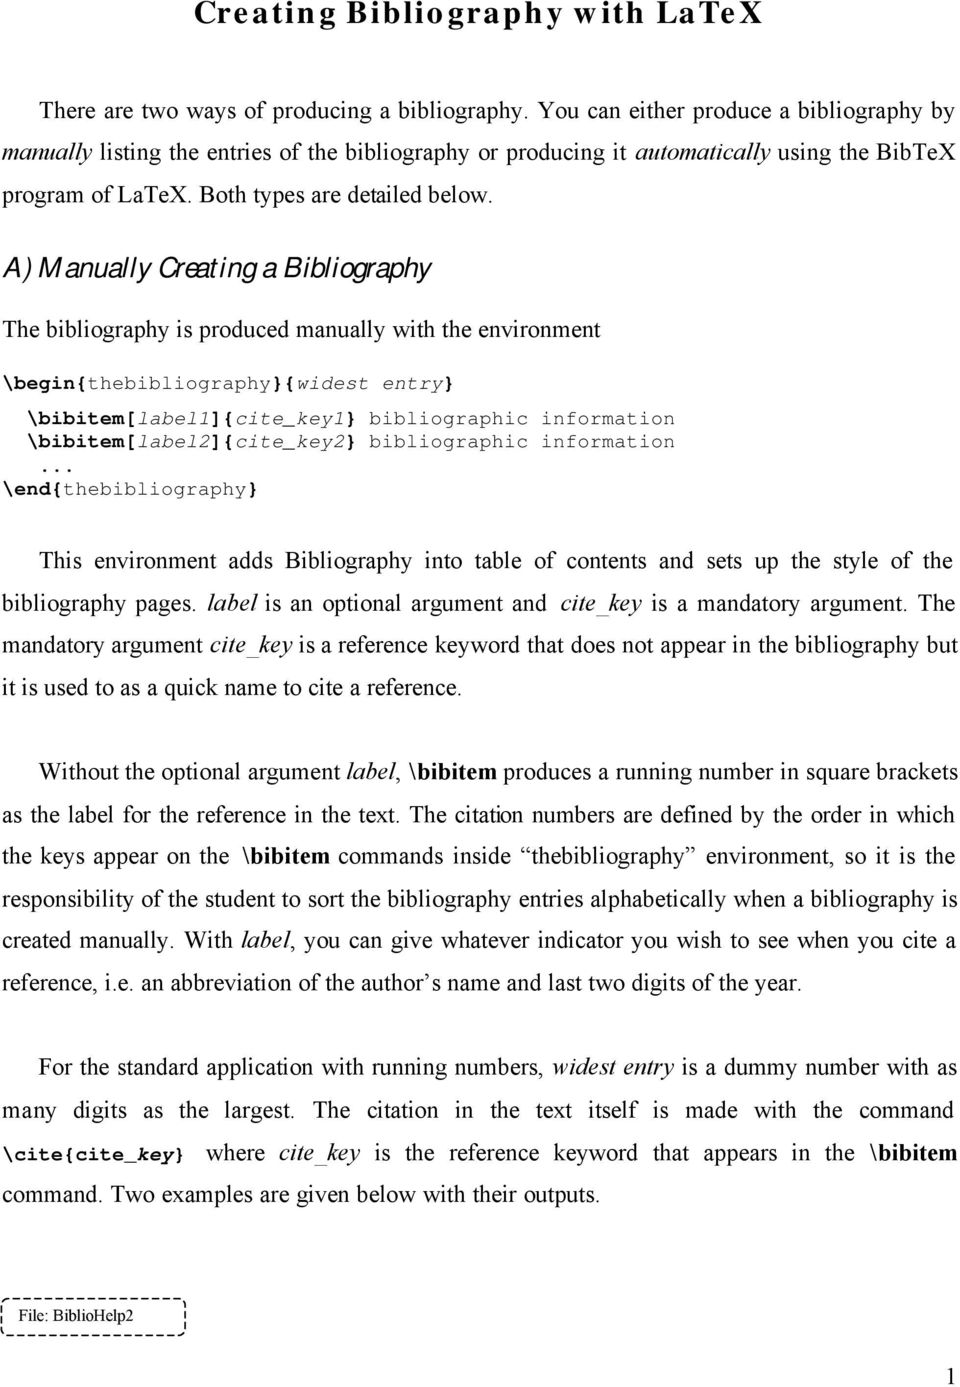 A) Manually Creating a Bibliography The bibliography is produced manually with the environment \begin{thebibliography{widest entry \bibitem[label1]{cite_key1 bibliographic information